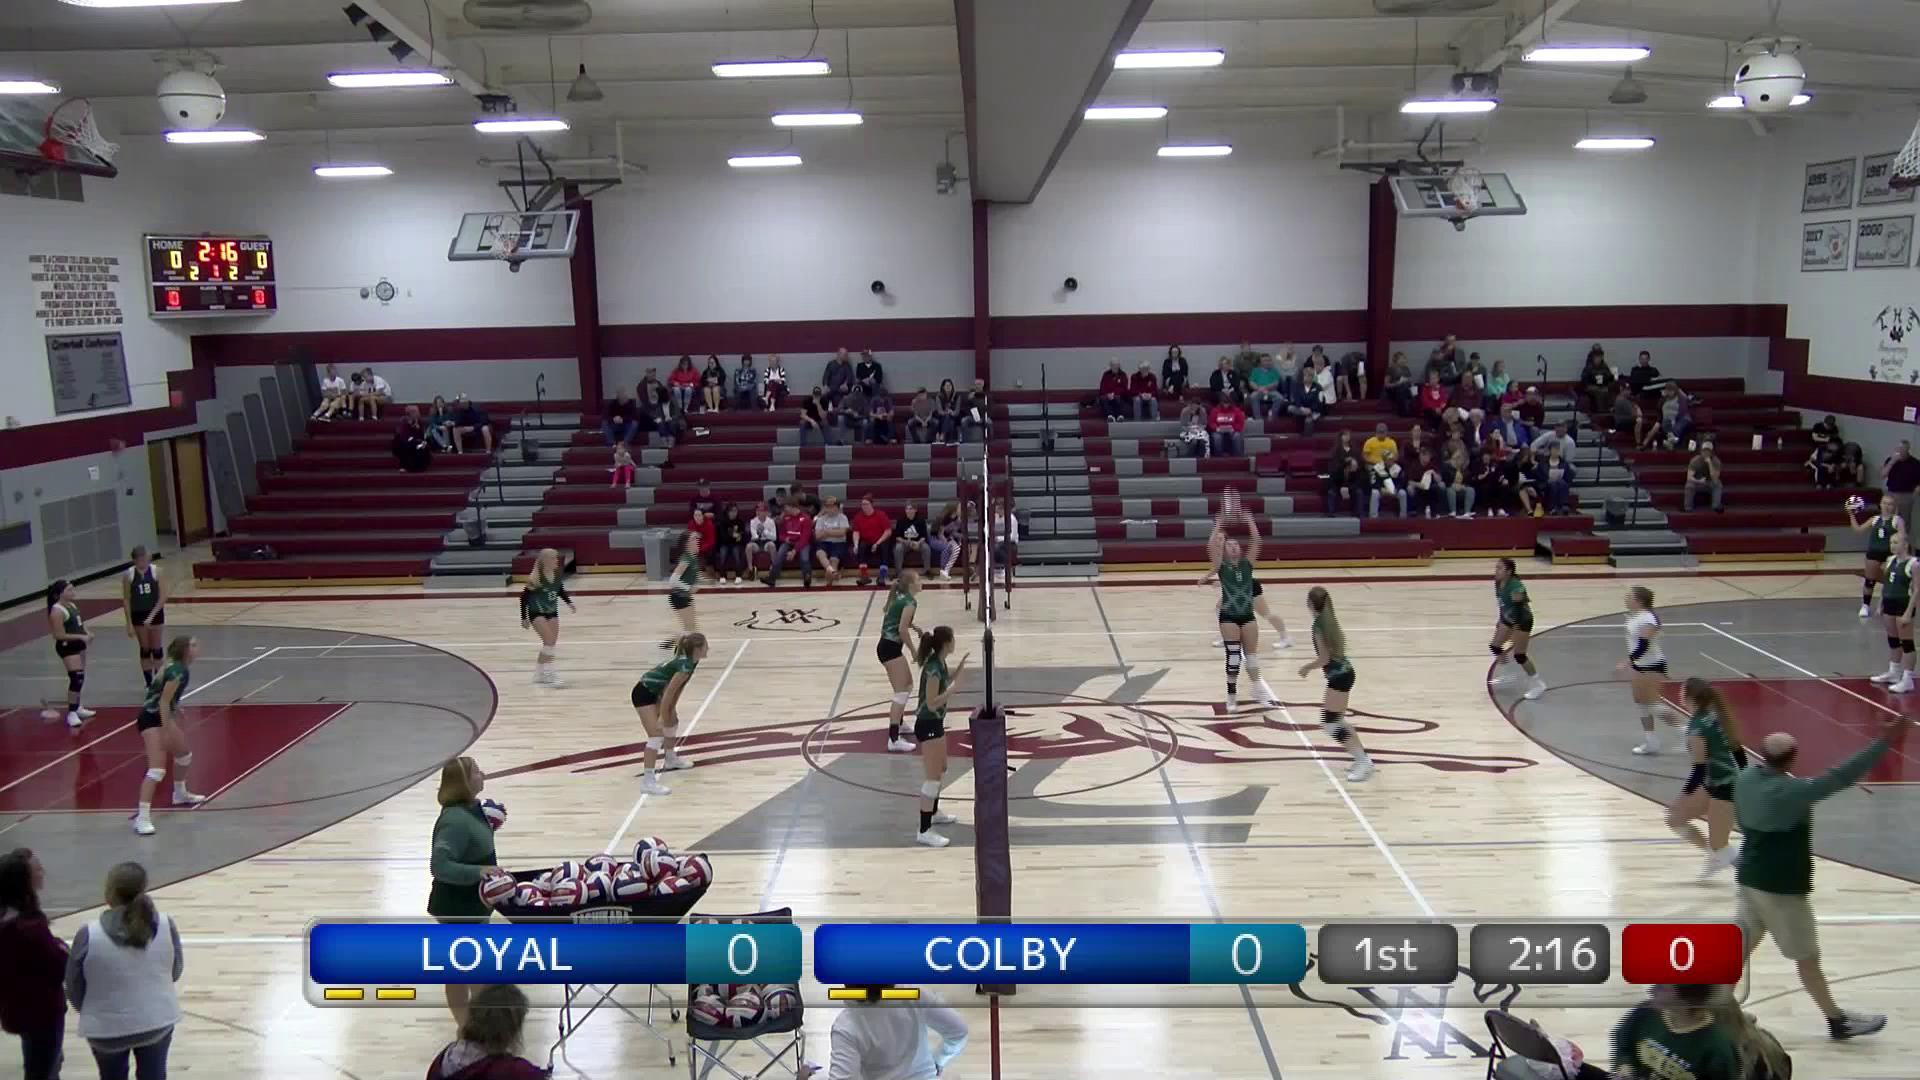 VB Colby at Loyal